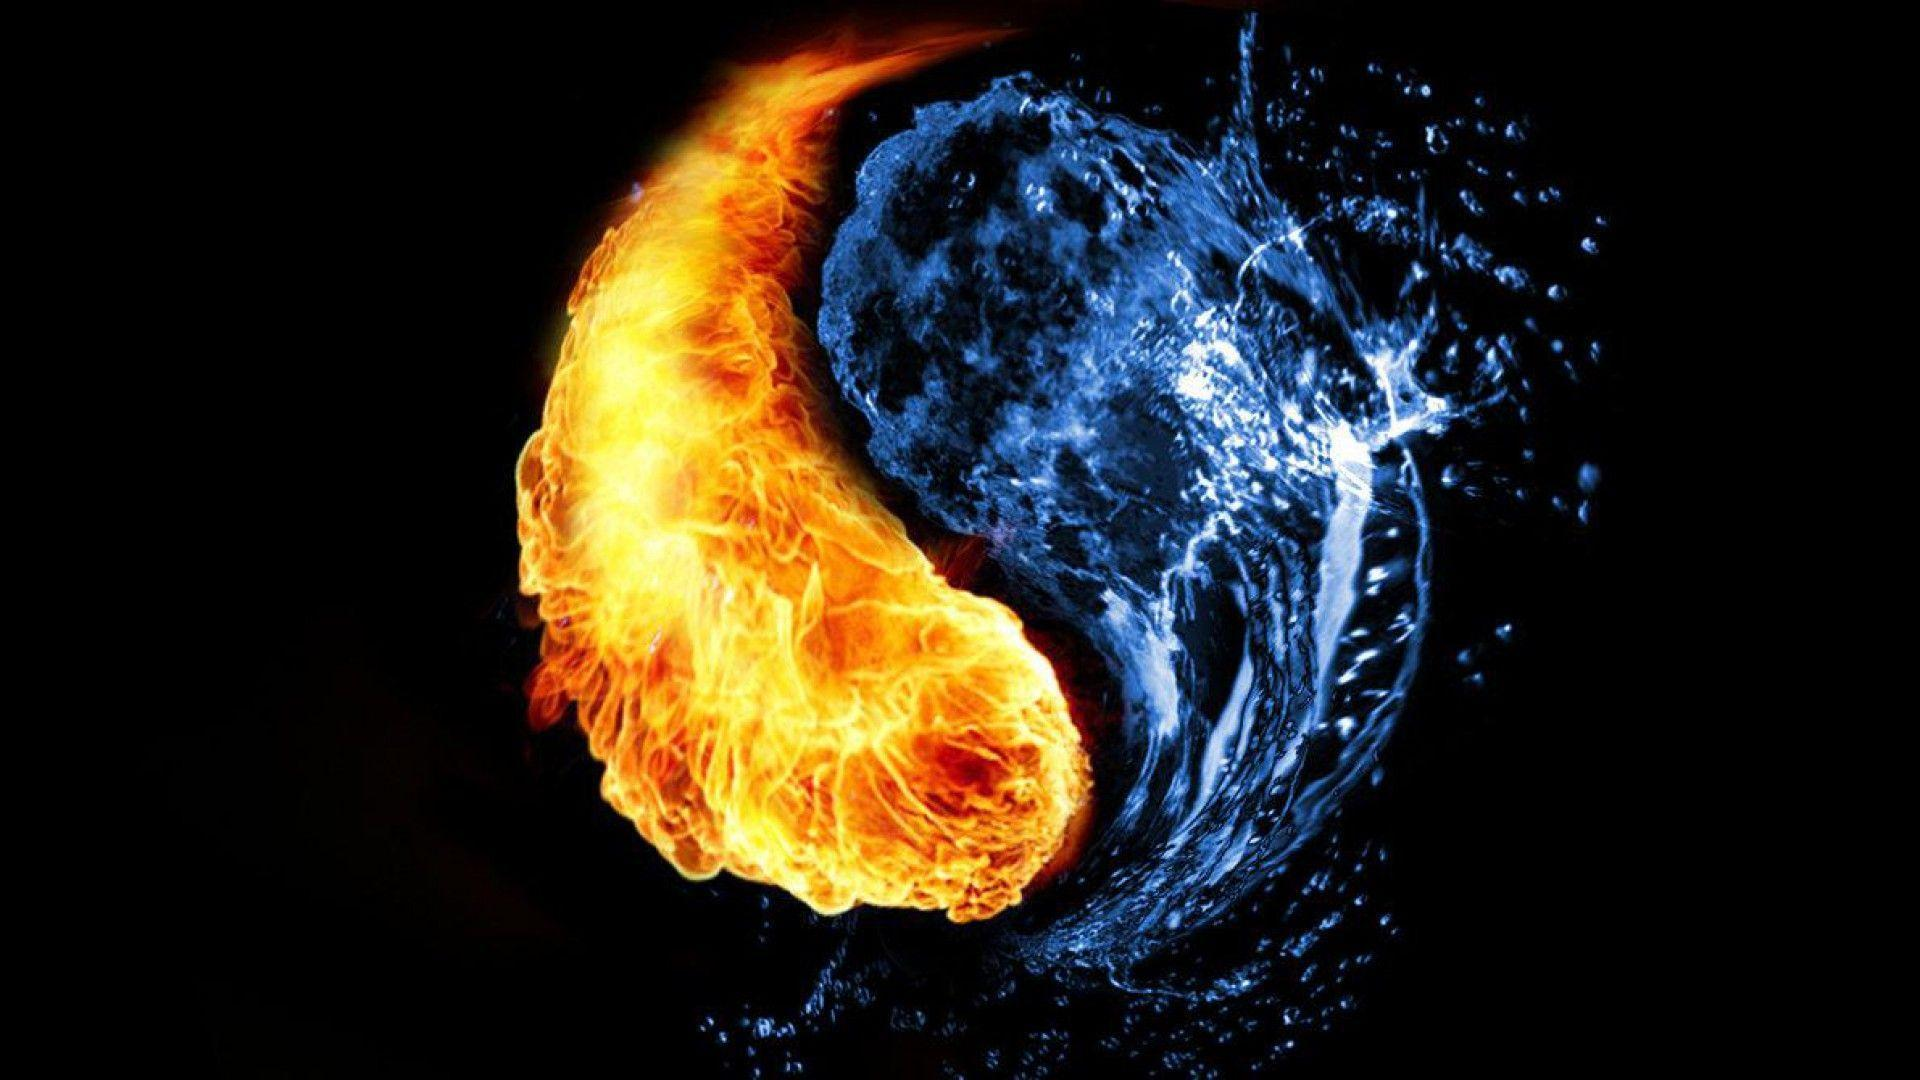 Cool Fire And Water Background Wallpaper HD